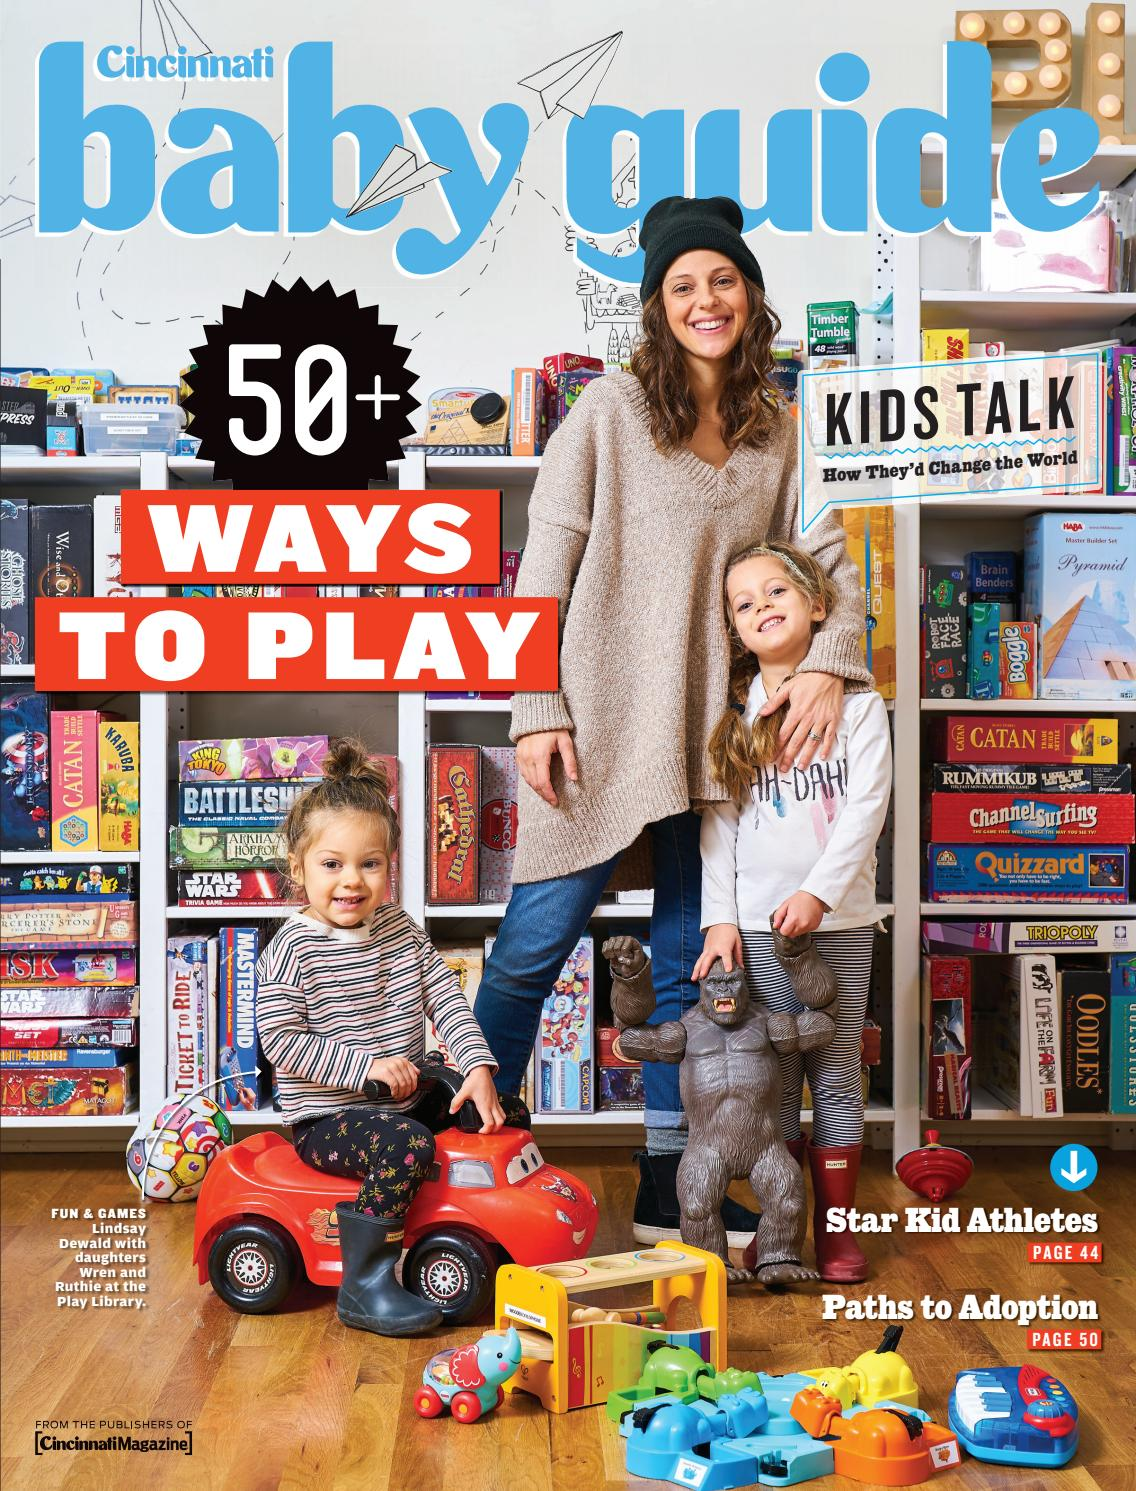 Cincinnati Baby Guide 2018-2019 by Cincinnati Magazine - issuu